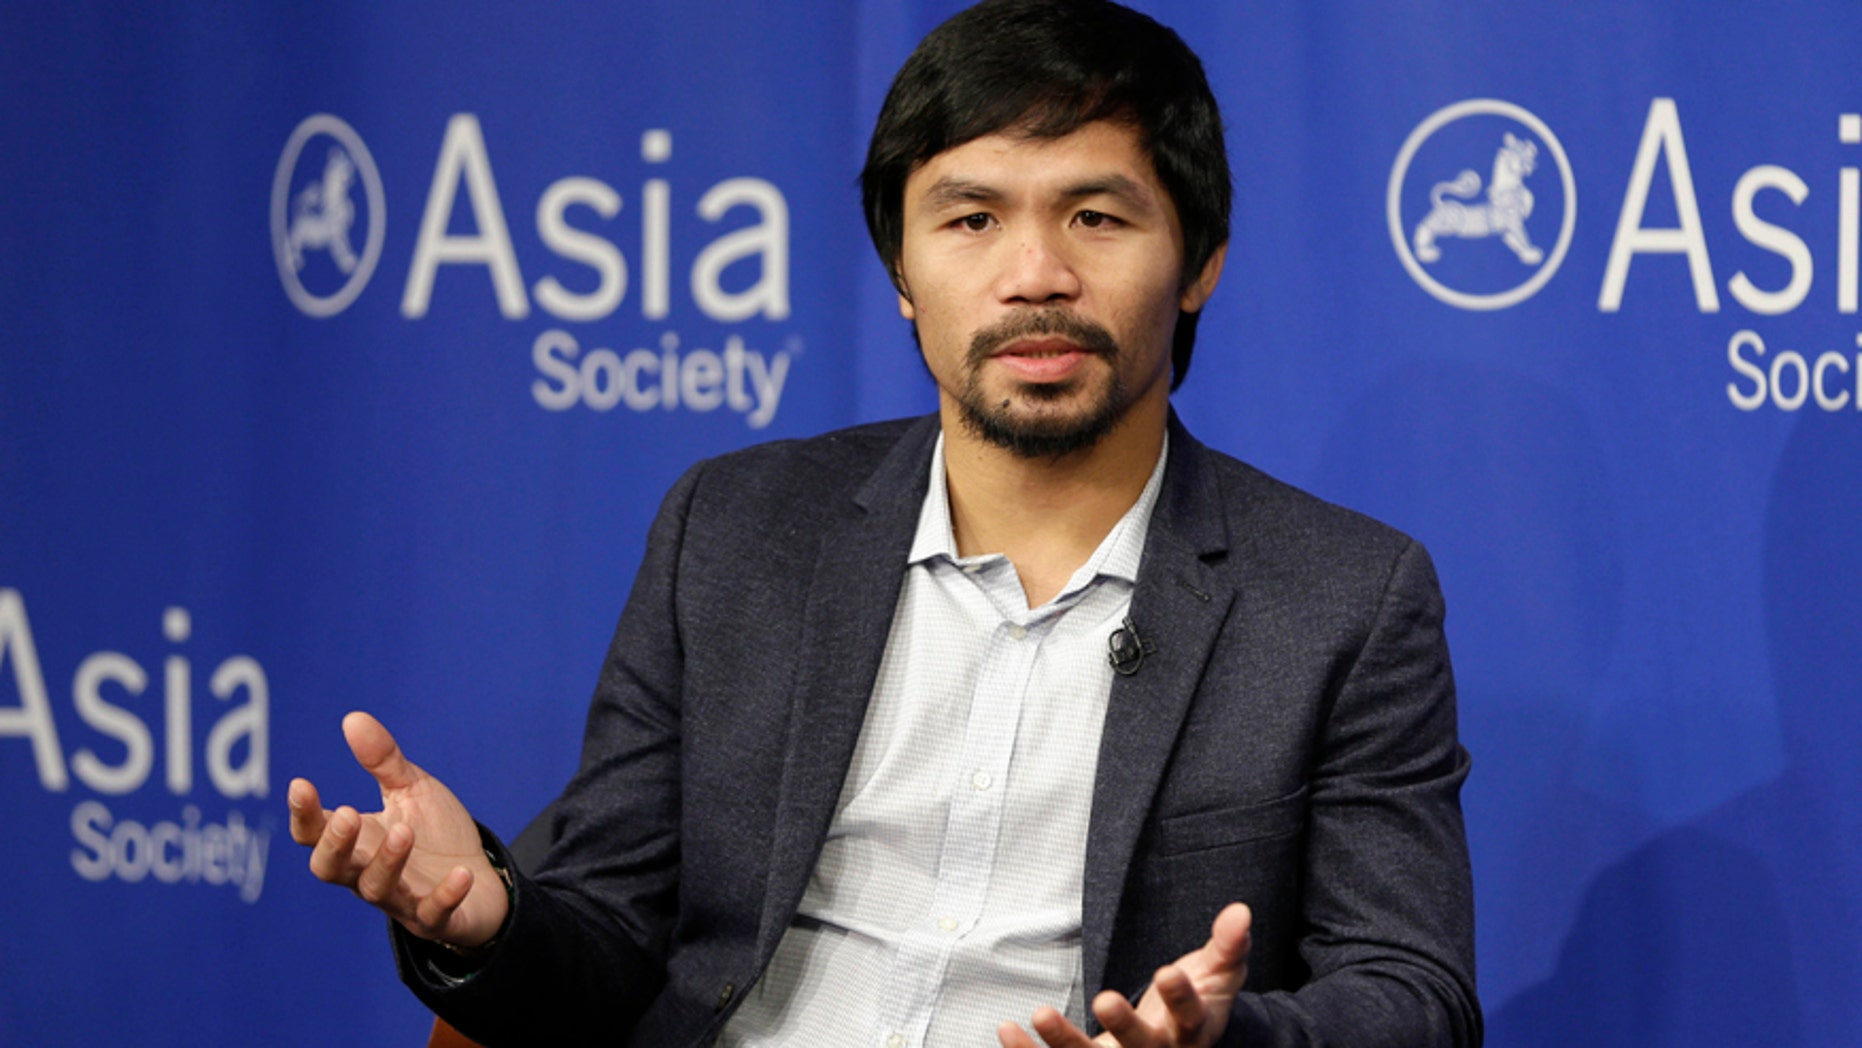 Oct. 12, 2015: Manny Pacquiao takes questions at the Asia Society in New York.